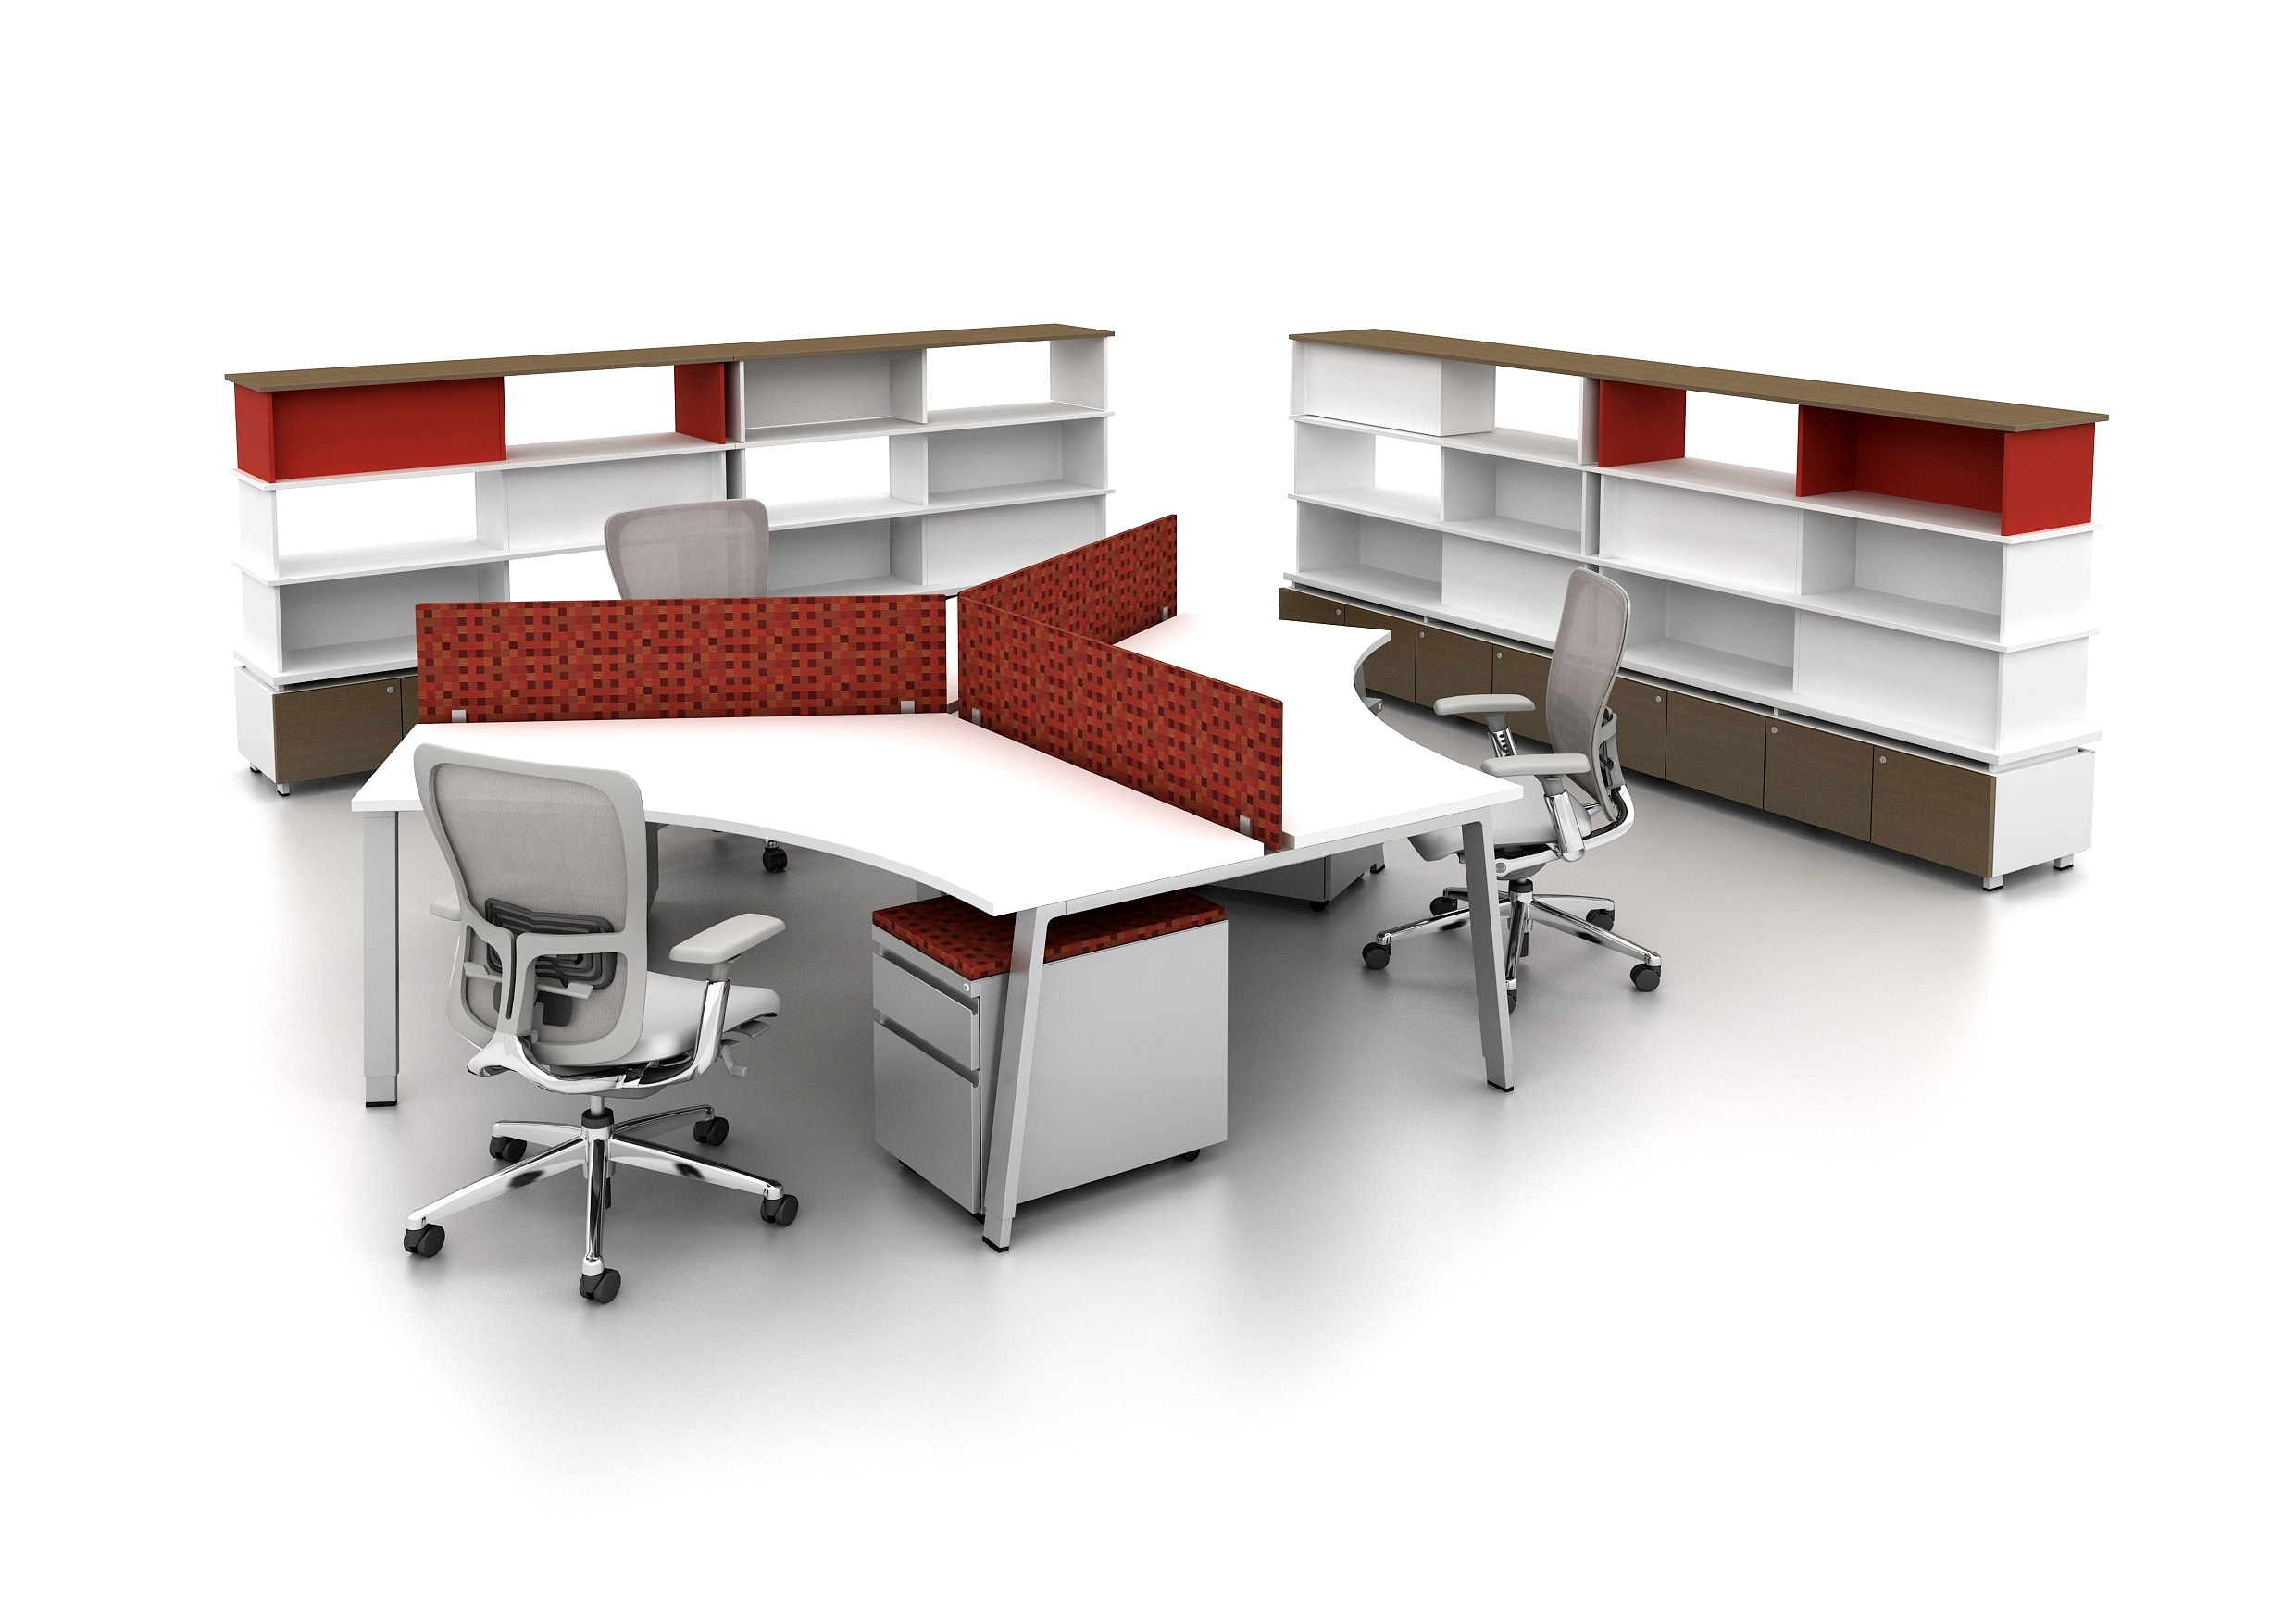 Discover Haworth's Open Office Inspiration